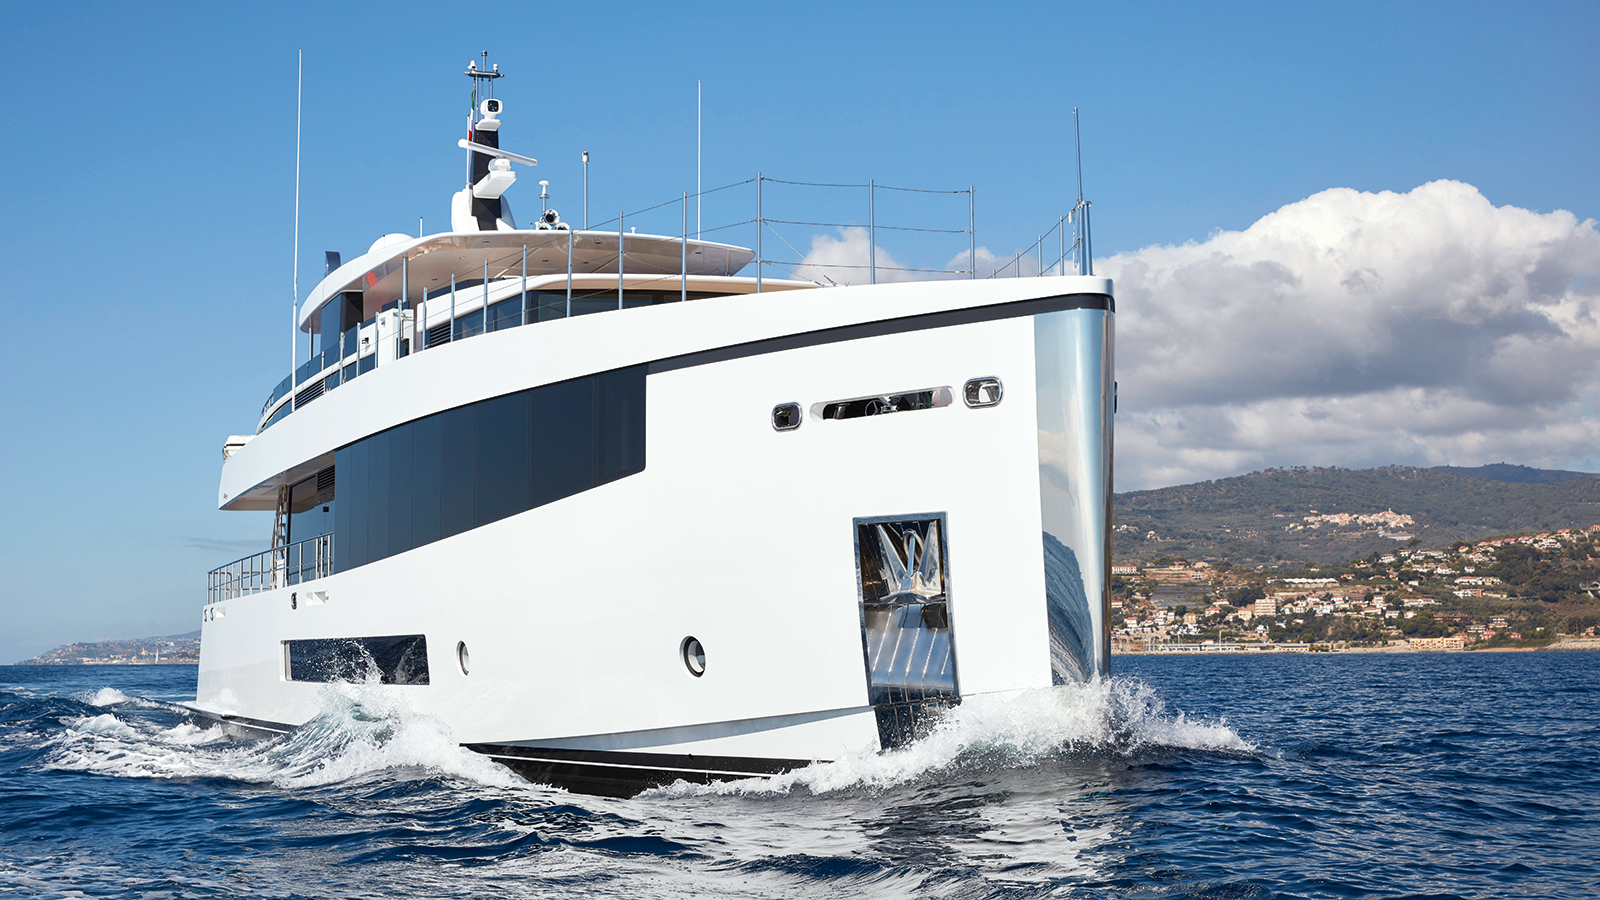 bow-view-of-the-feadship-superyacht-letani